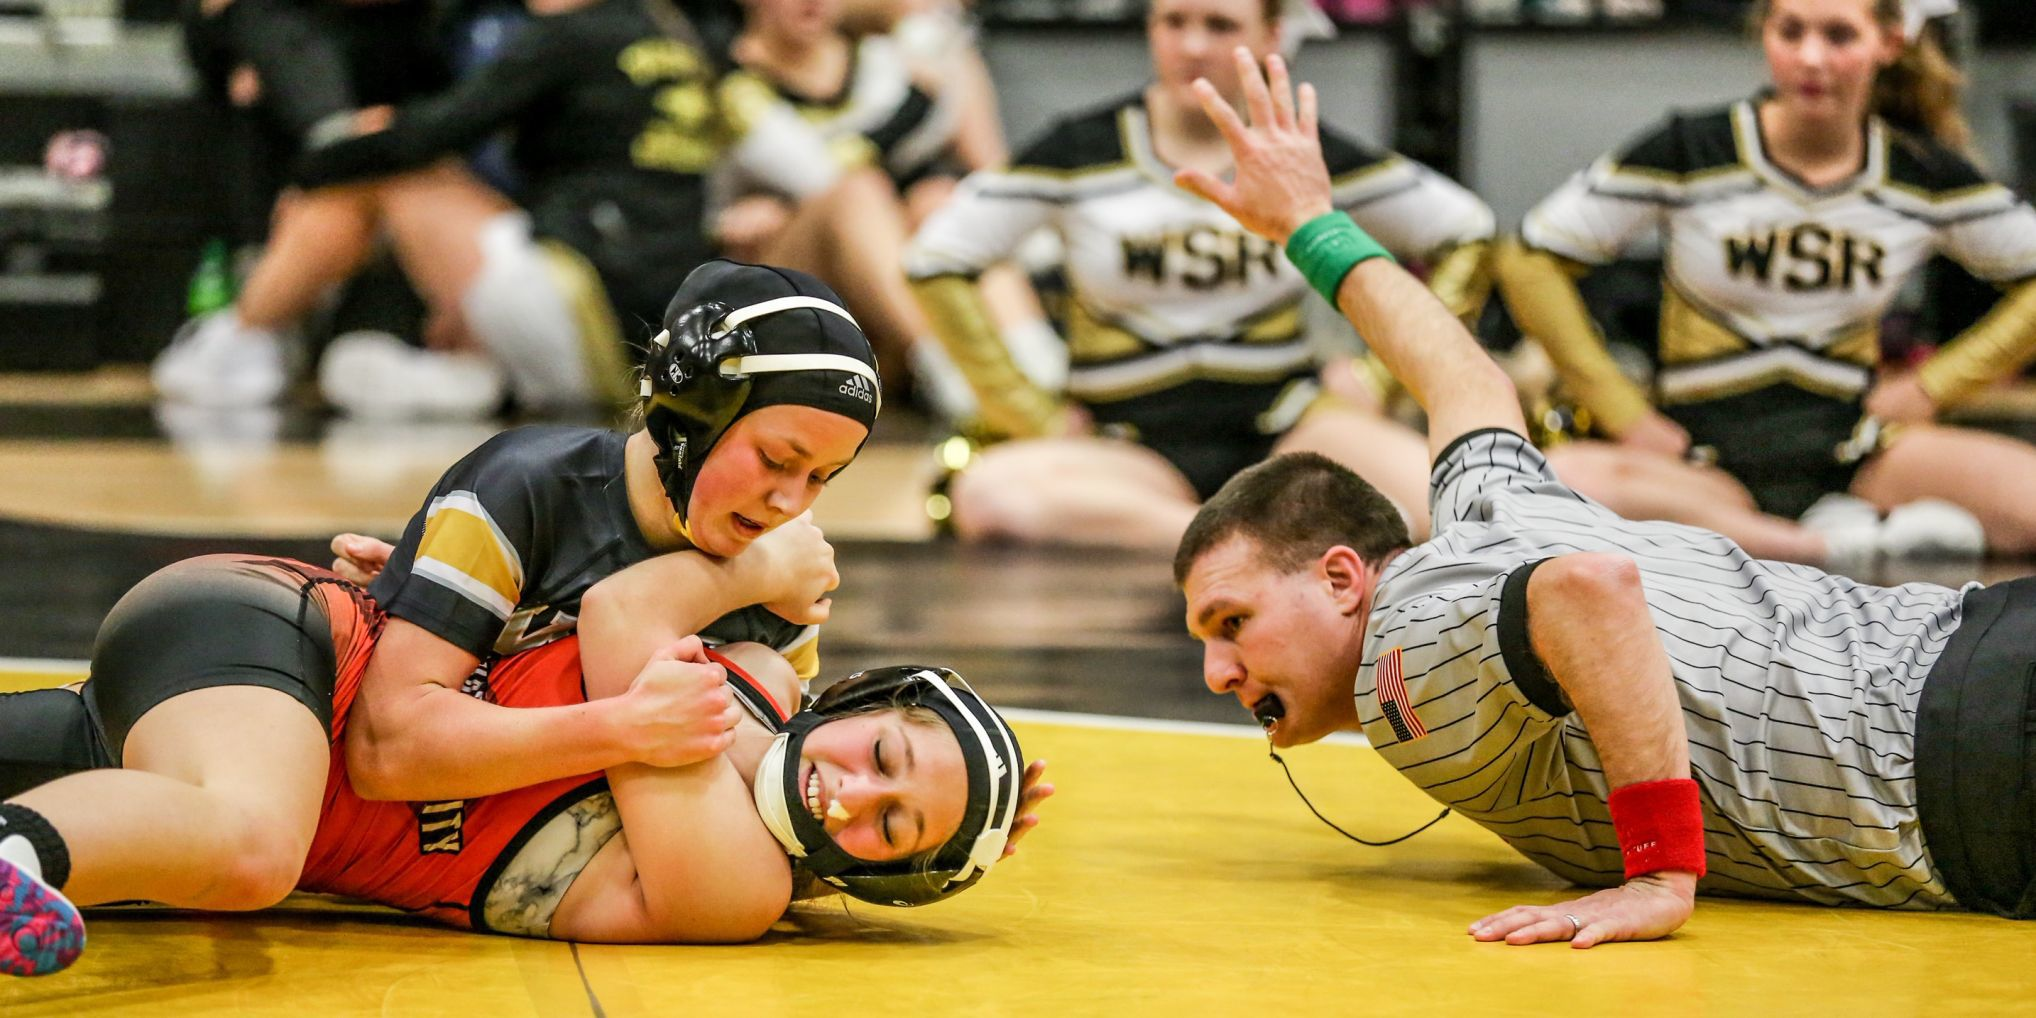 Wrestling leads to banging